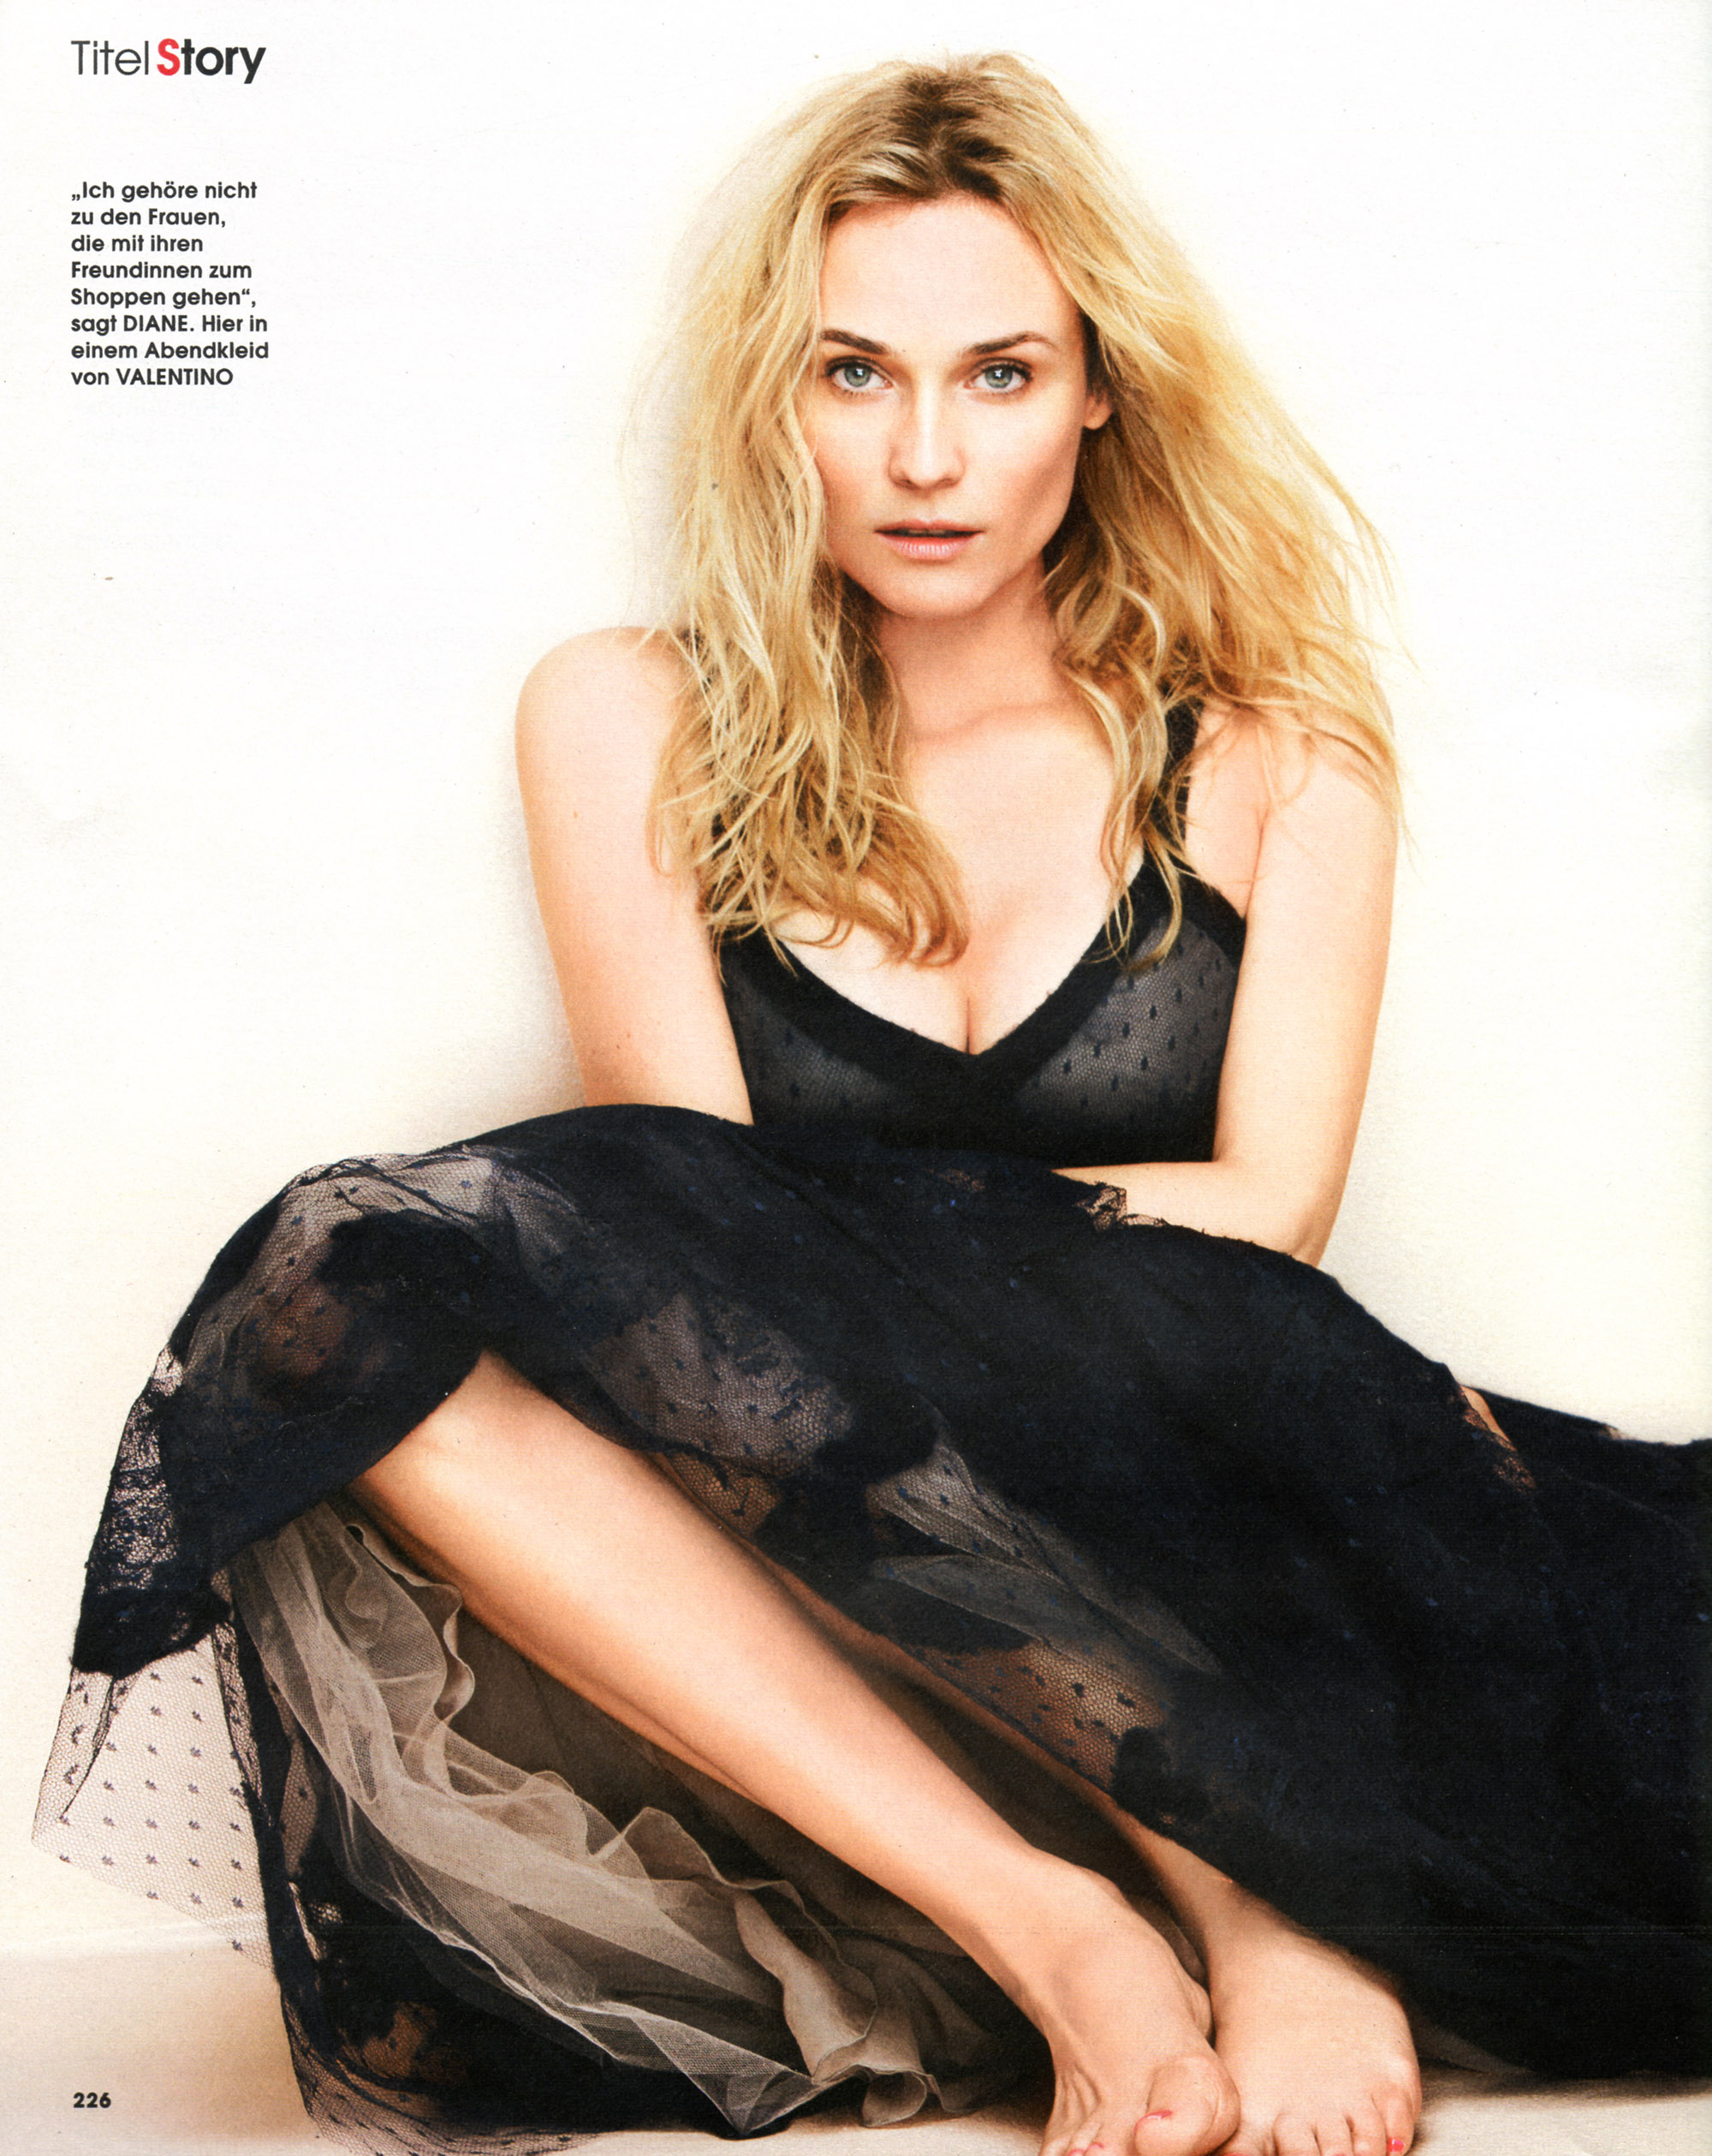 Hot Diane Kruger nudes (67 foto and video), Topless, Hot, Instagram, braless 2019